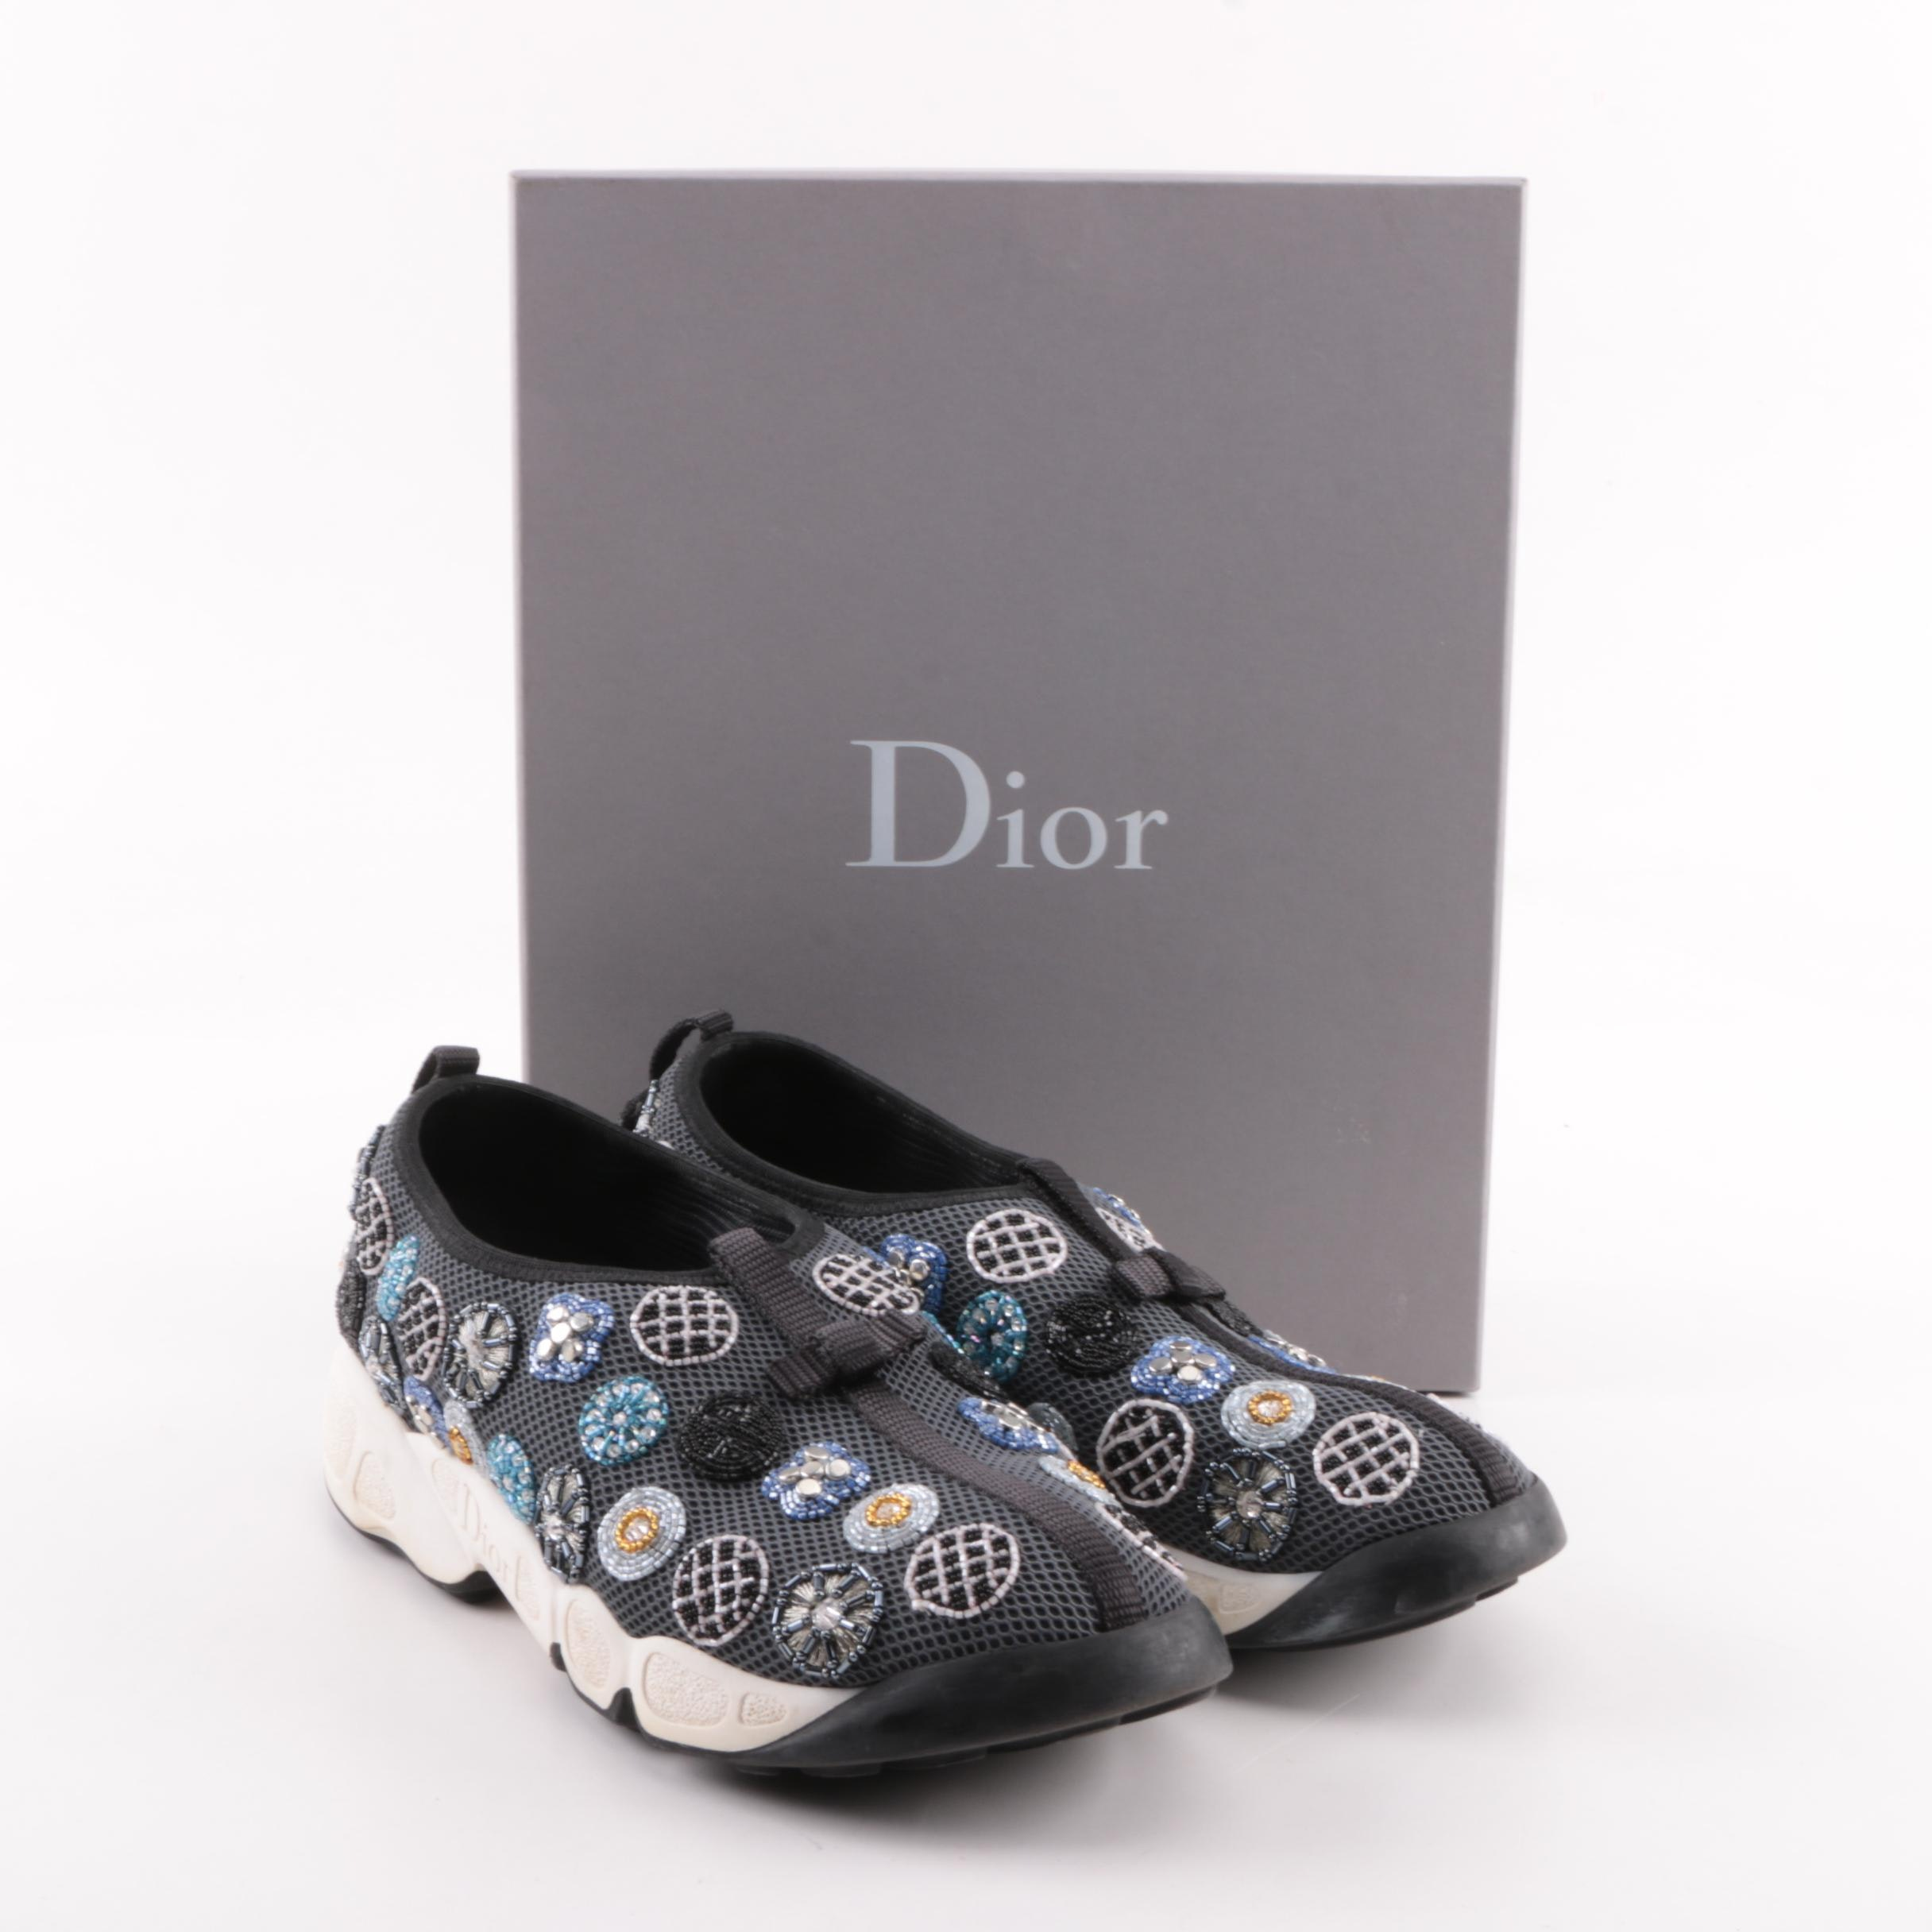 Women's Christian Dior Fusion Embellished Slip-On Sneakers